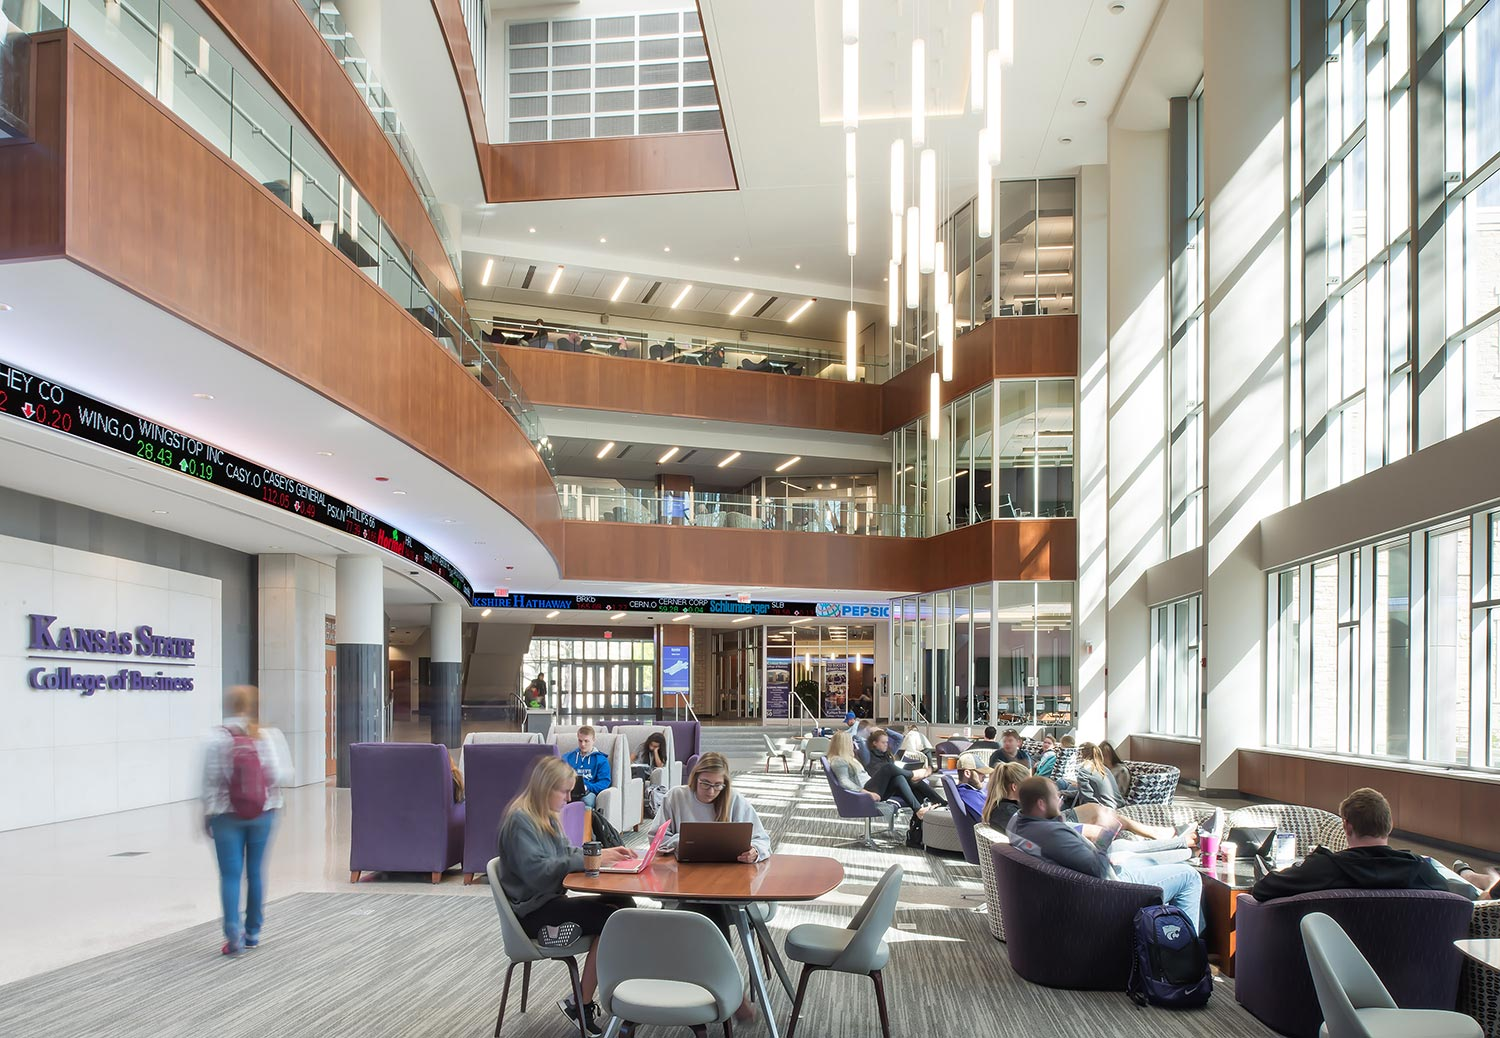 College of Business Administration - Kansas State University